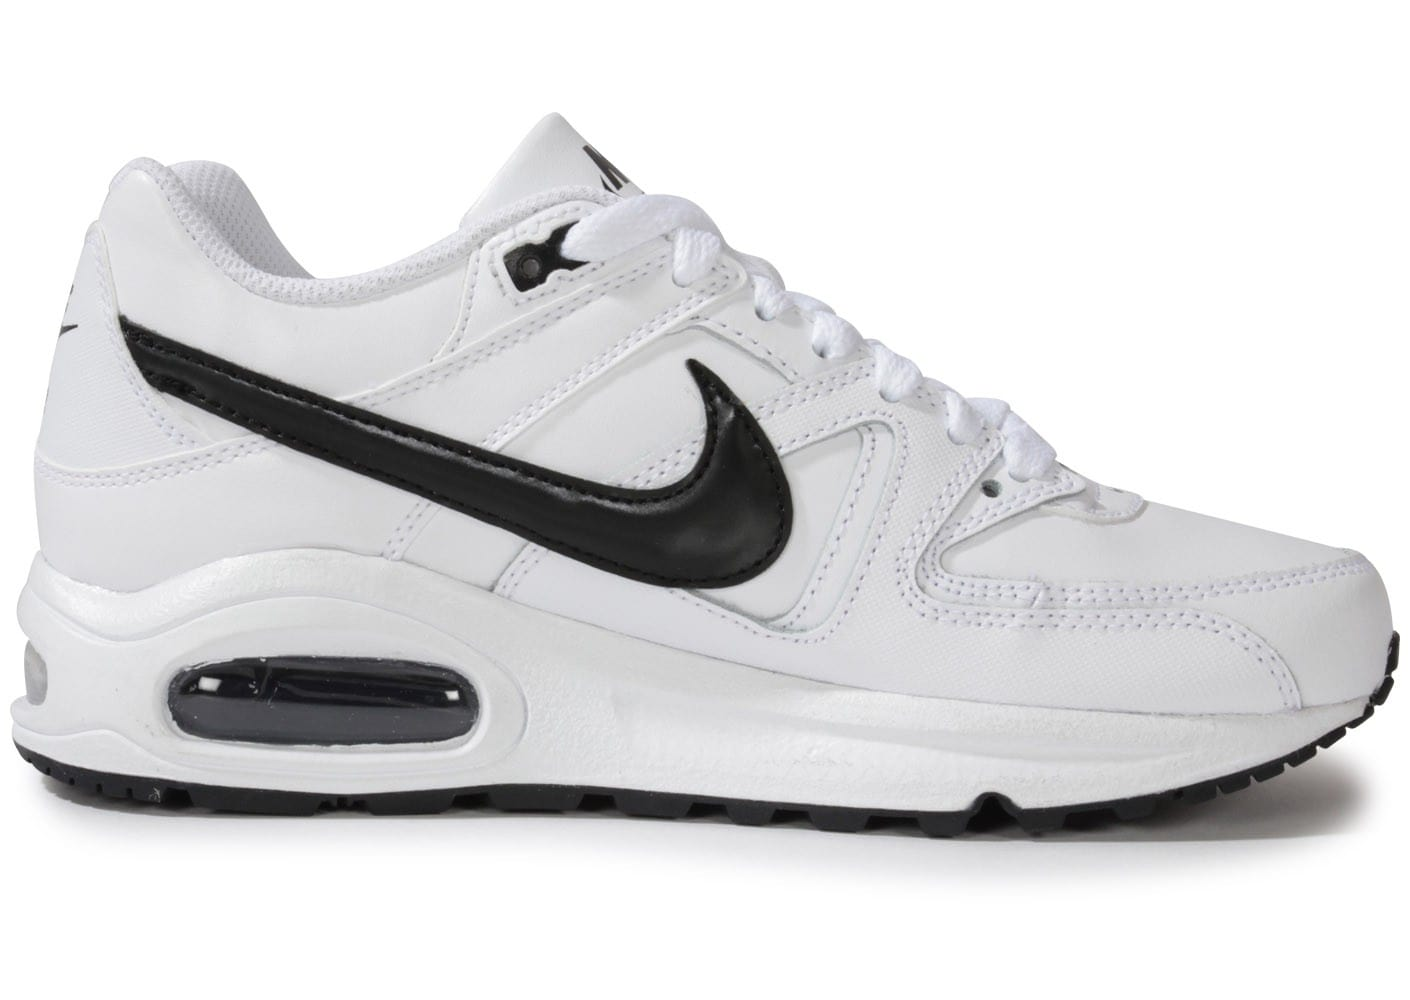 Nike Max Command Air Flex Ltr Gs Gs nike TFJlcK1